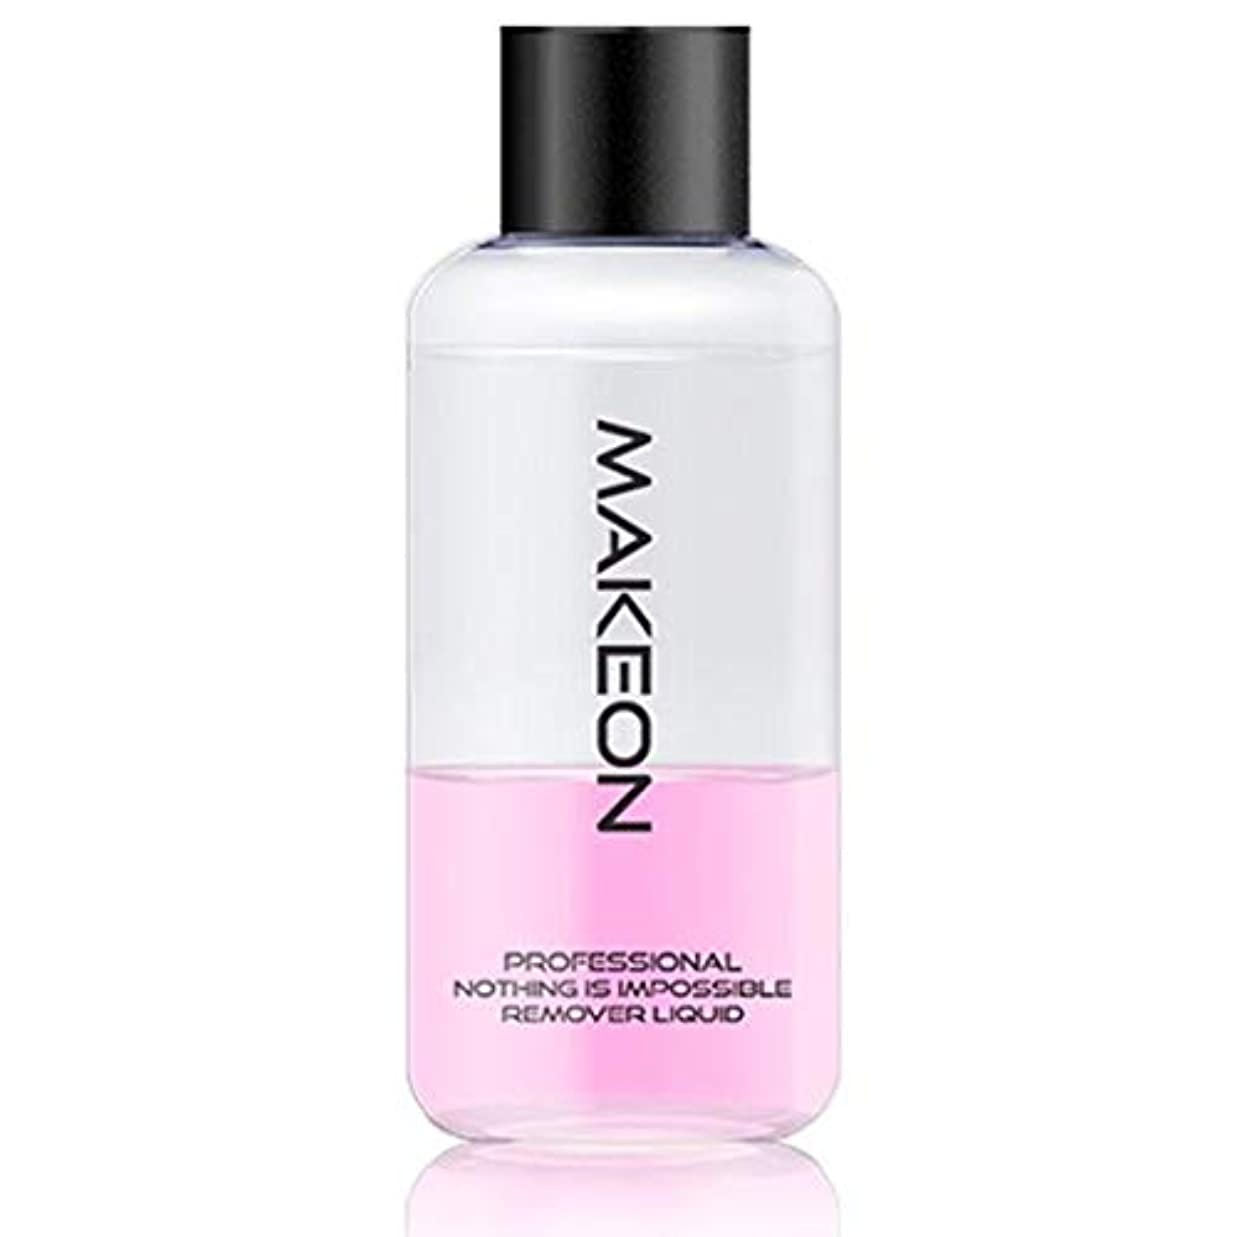 【Tosowoong] [MAKEON]リップ&アイメイクアップリムーバー120ml/メイクアップリムーバー/化粧品